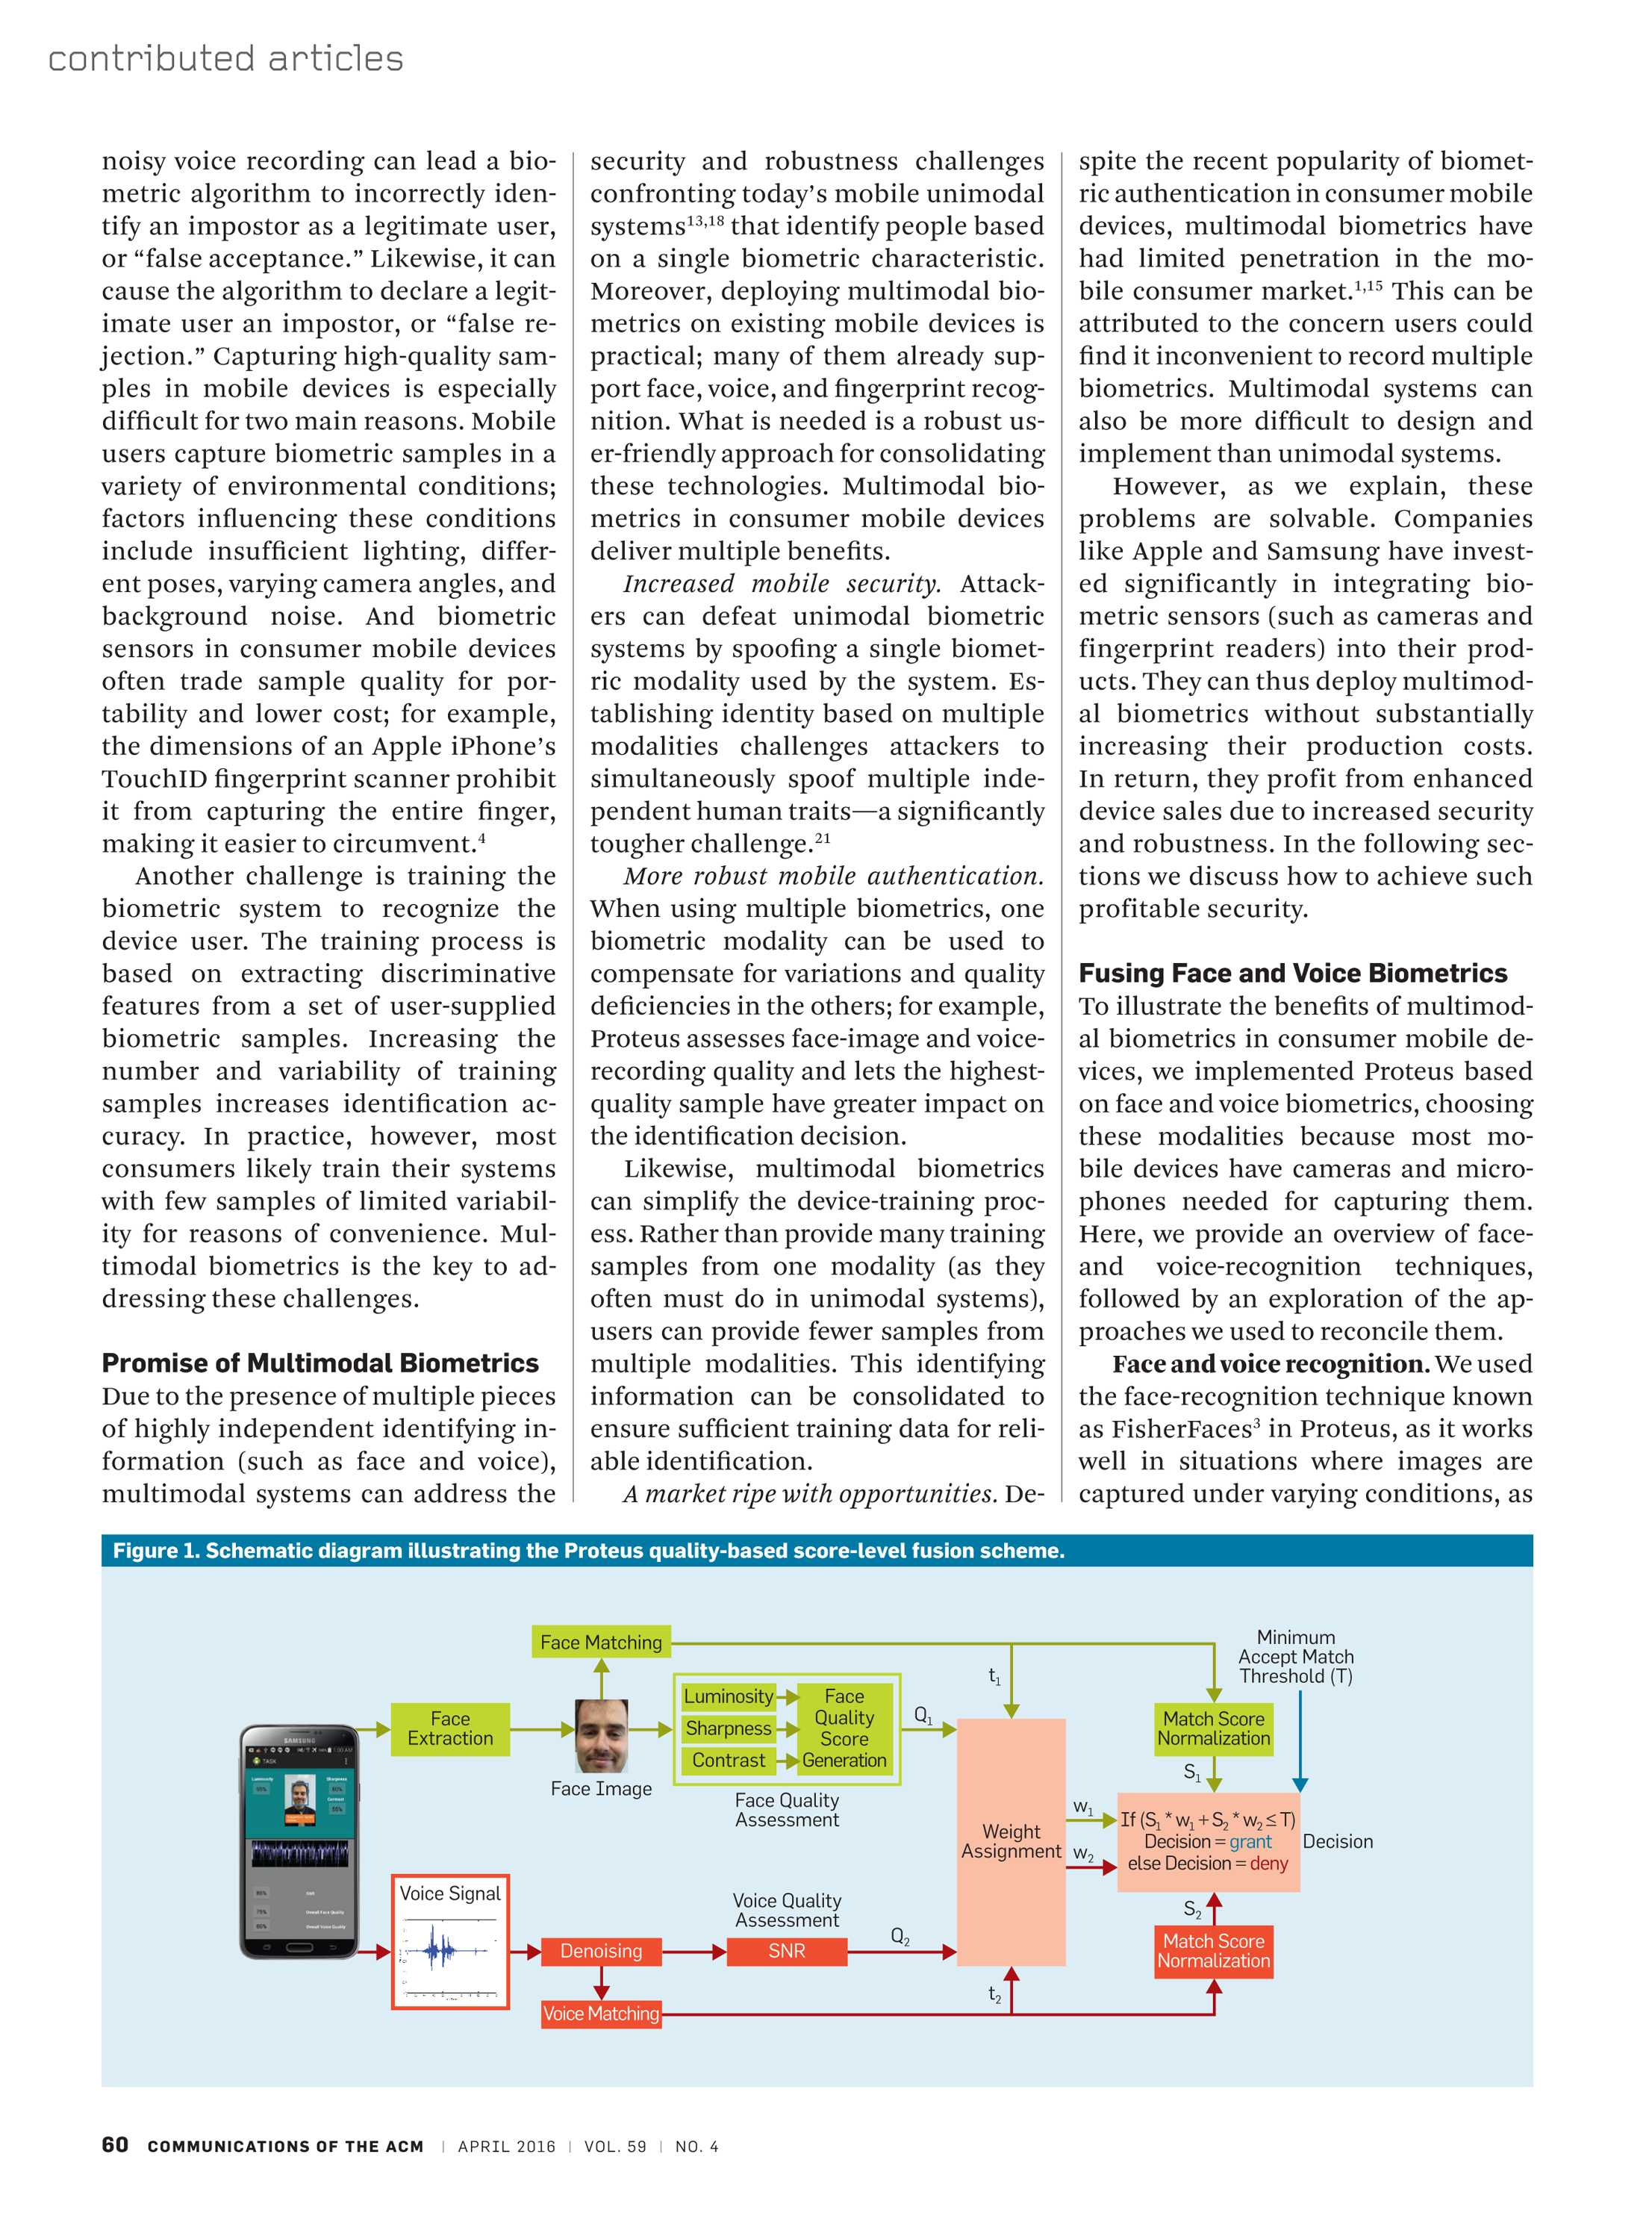 Communications Of The Acm April 2016 Page 60 Schematic Design Examples Using Proteus